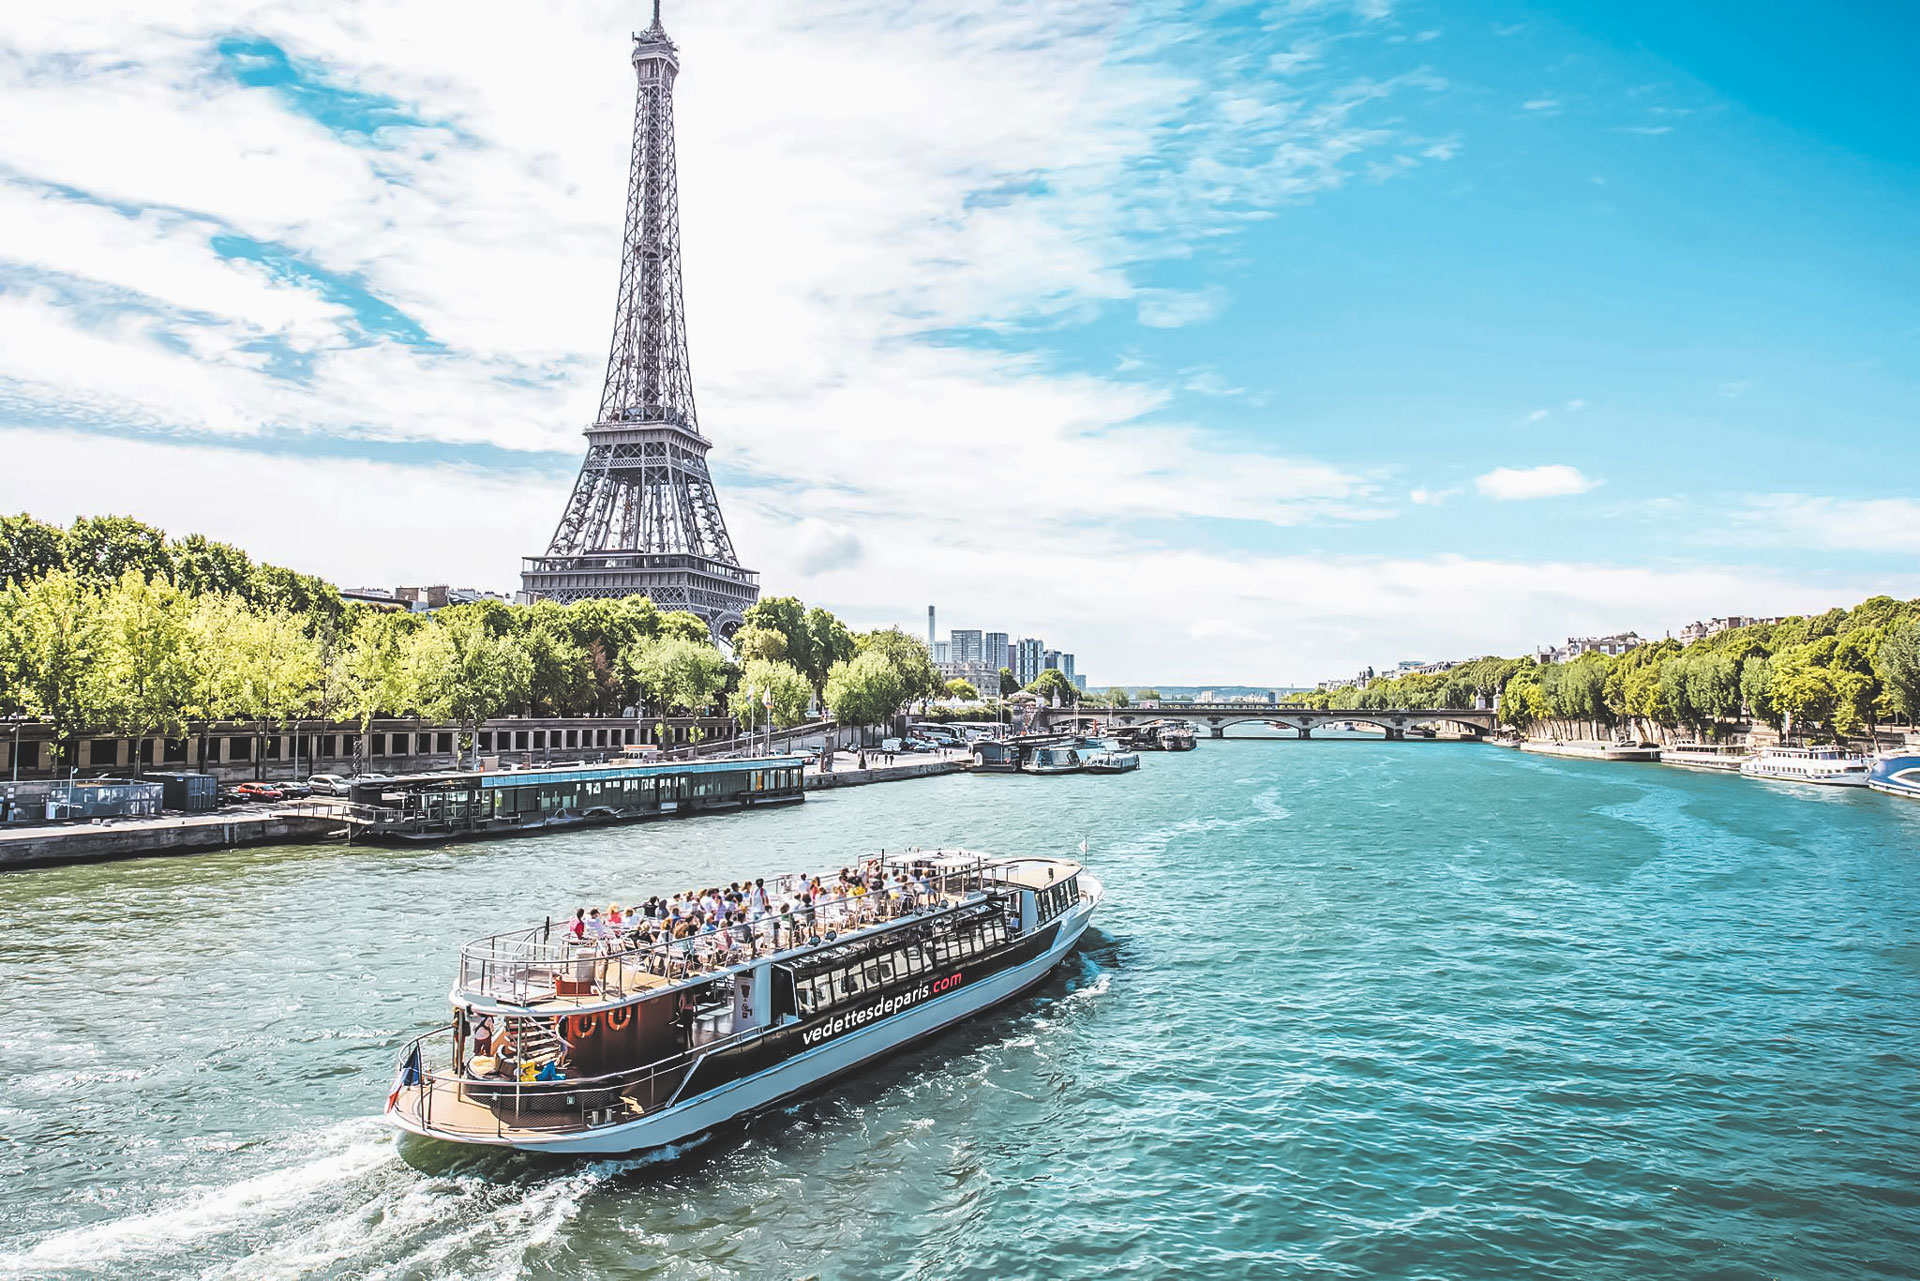 Paris with Seine River Cruise - Our World Travel Selfies